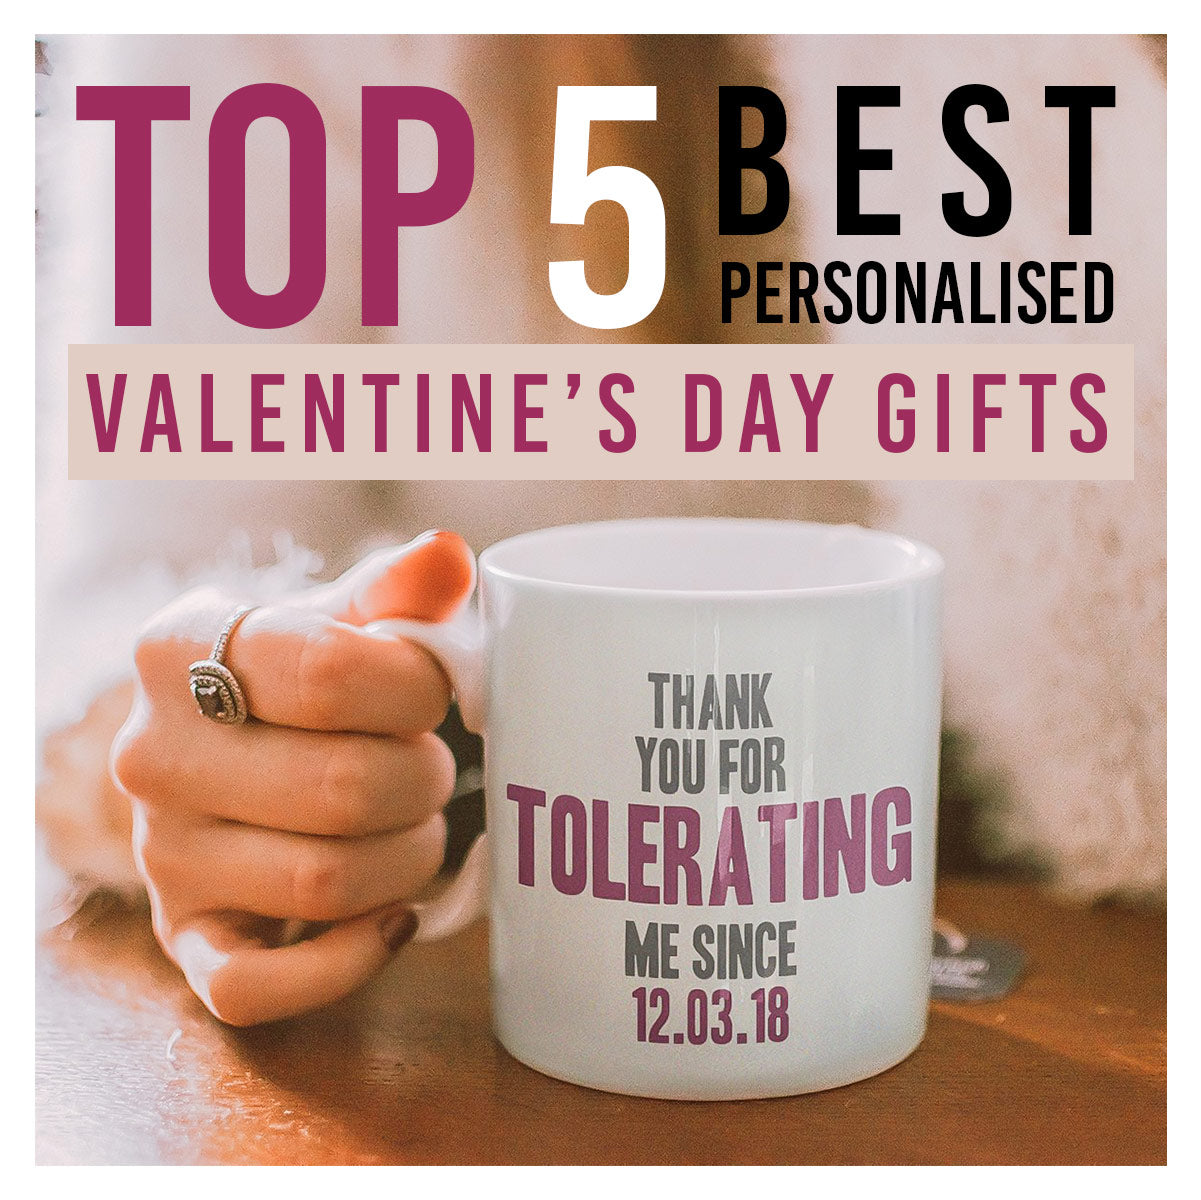 Top 5 Best Personalised Valentine's Day Gifts